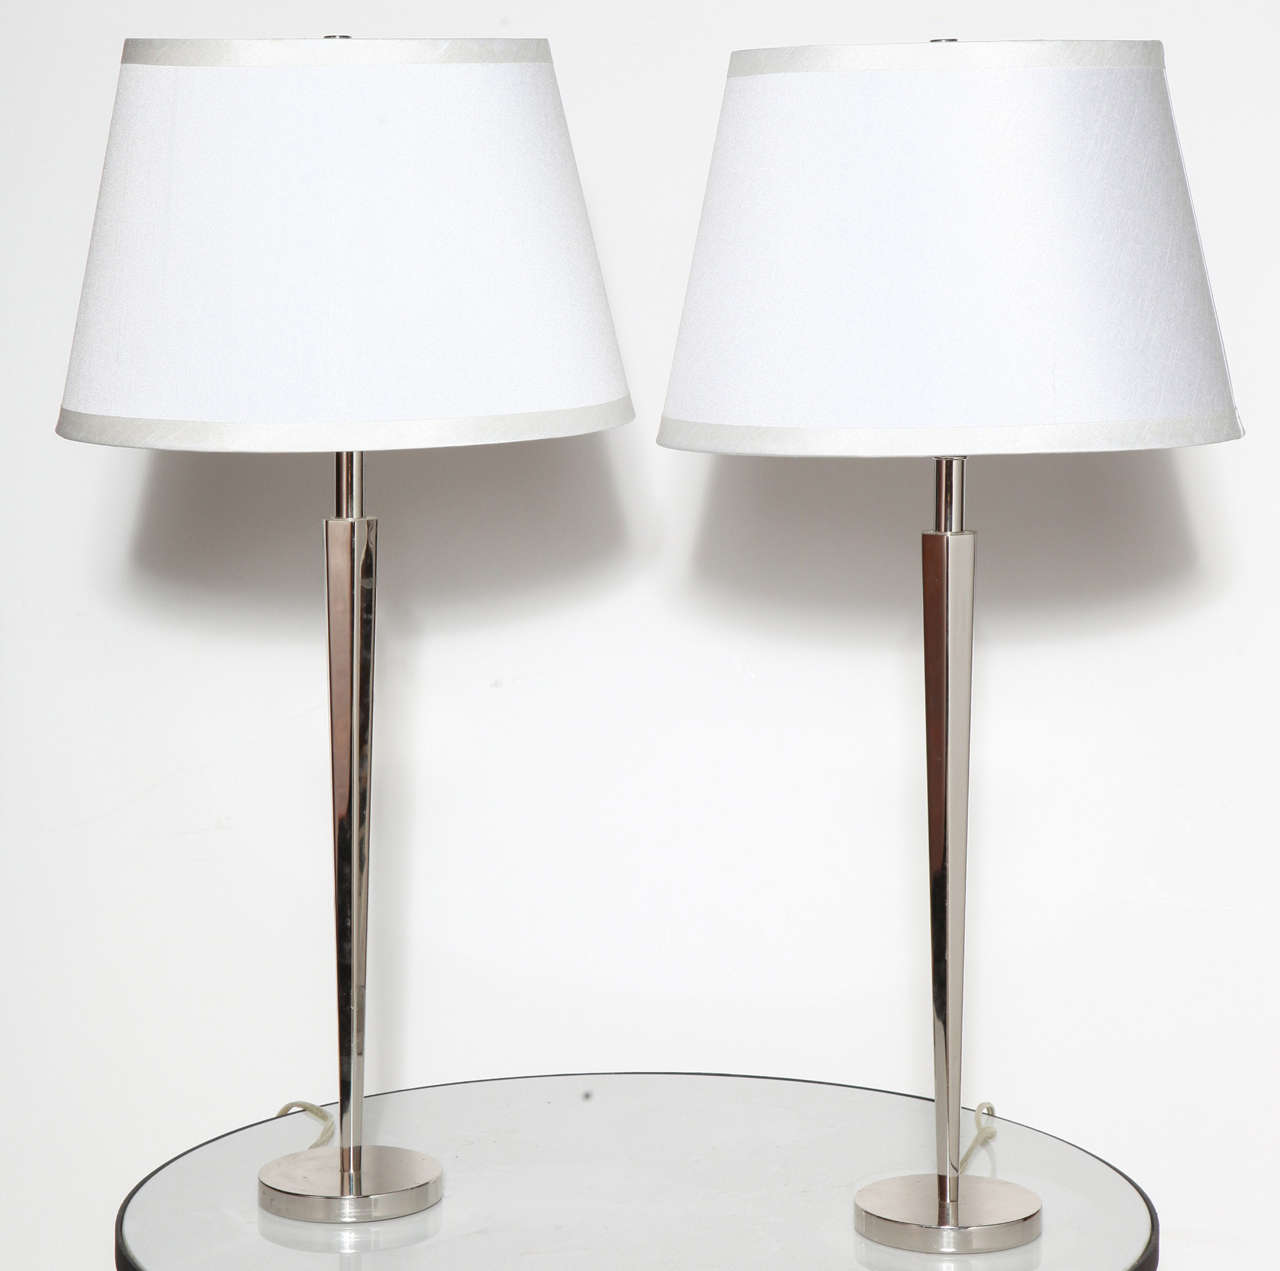 Pair Of Polished Nickel Pacific Heights Candlestick Table Lamps By Barbara  Barry 2